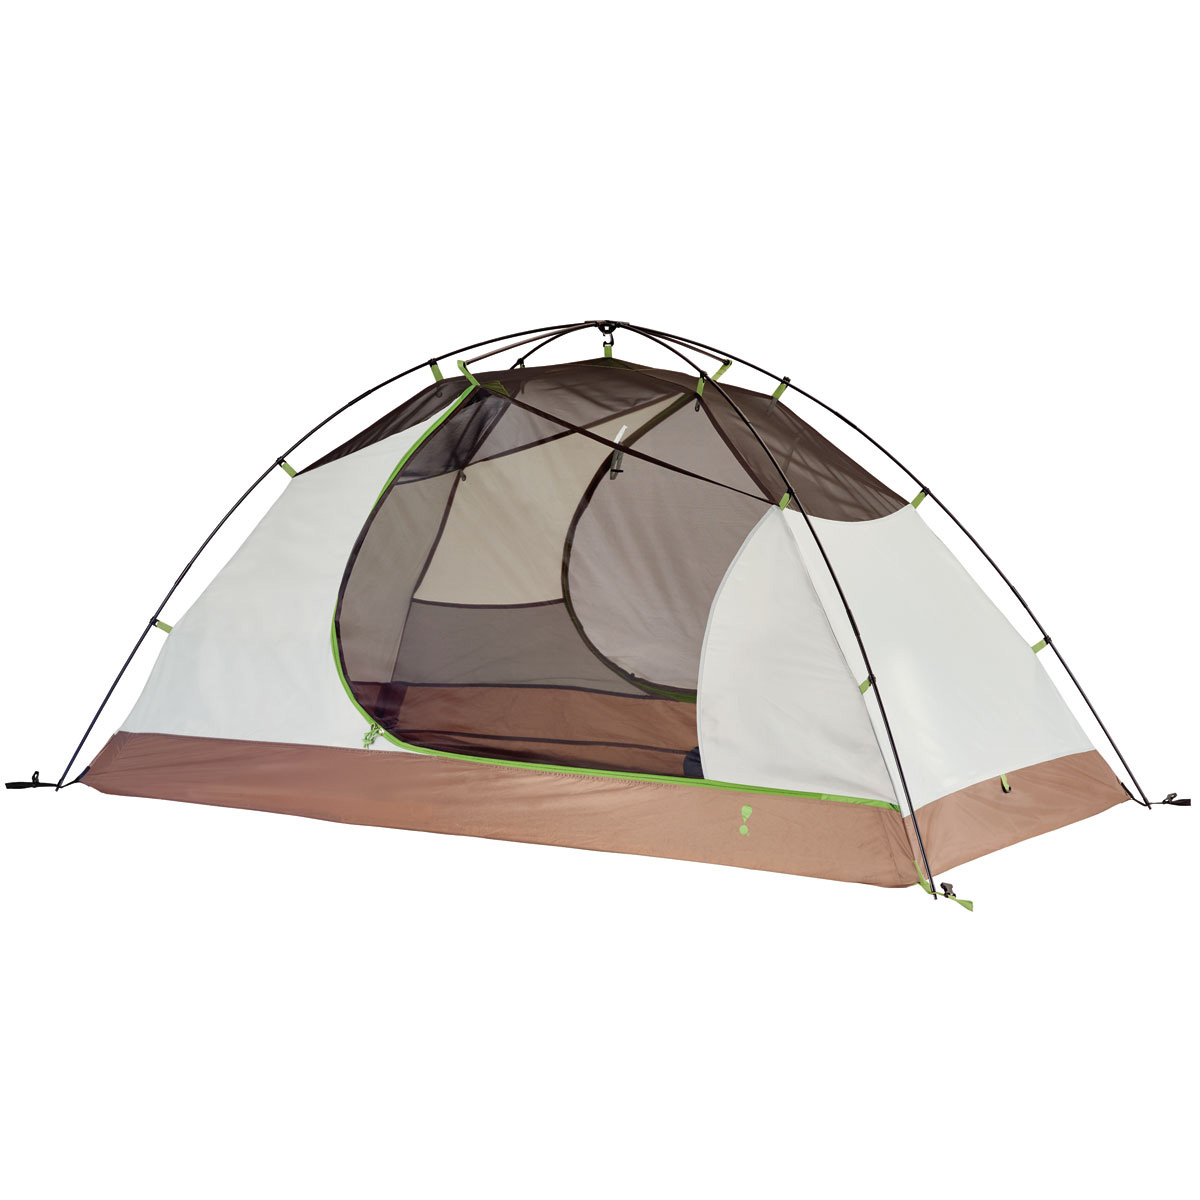 Apex 2XT 2 Person Tent  sc 1 st  Tents - Johnson Outdoors & Suma 2 Person Tent | Eureka!